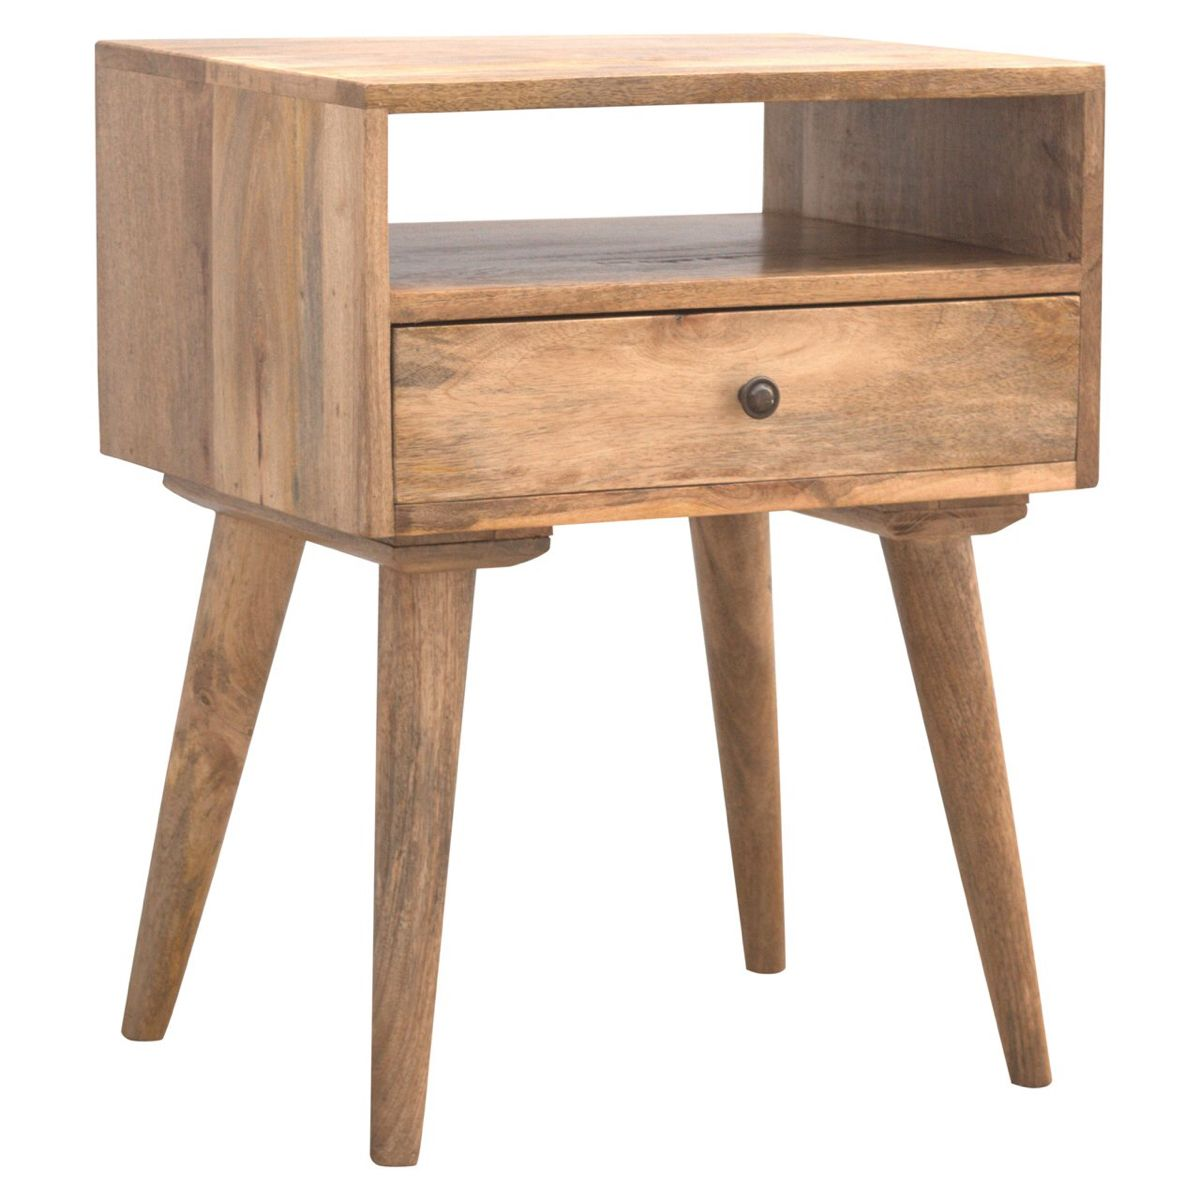 Solid Mango Wood Bedside Table Solid Wood Bedside Wood Bedside Table Solid Wood Bedside Tables